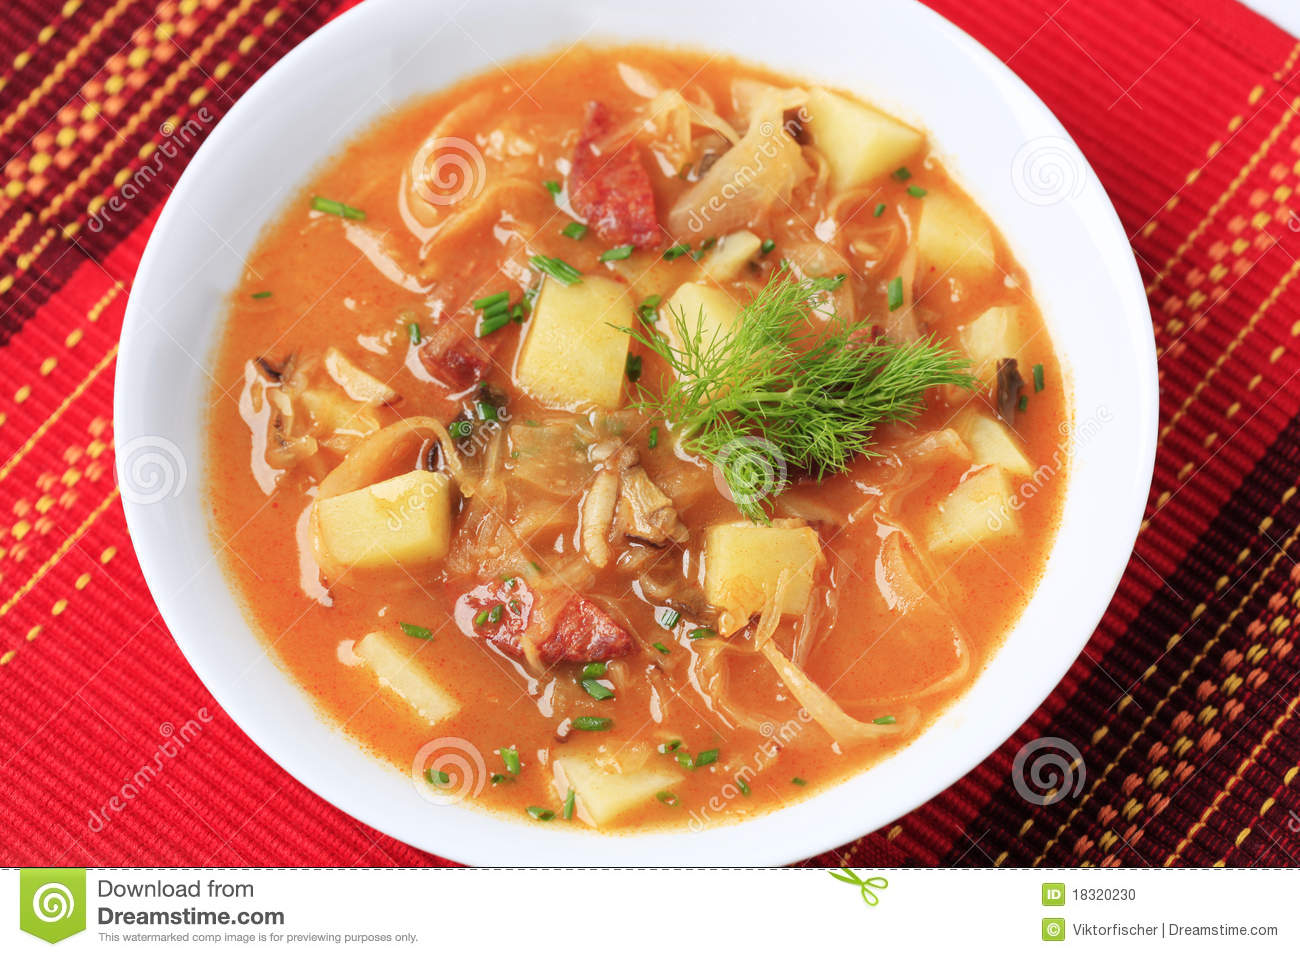 Cabbage soup with potatoes and sausage - detail.